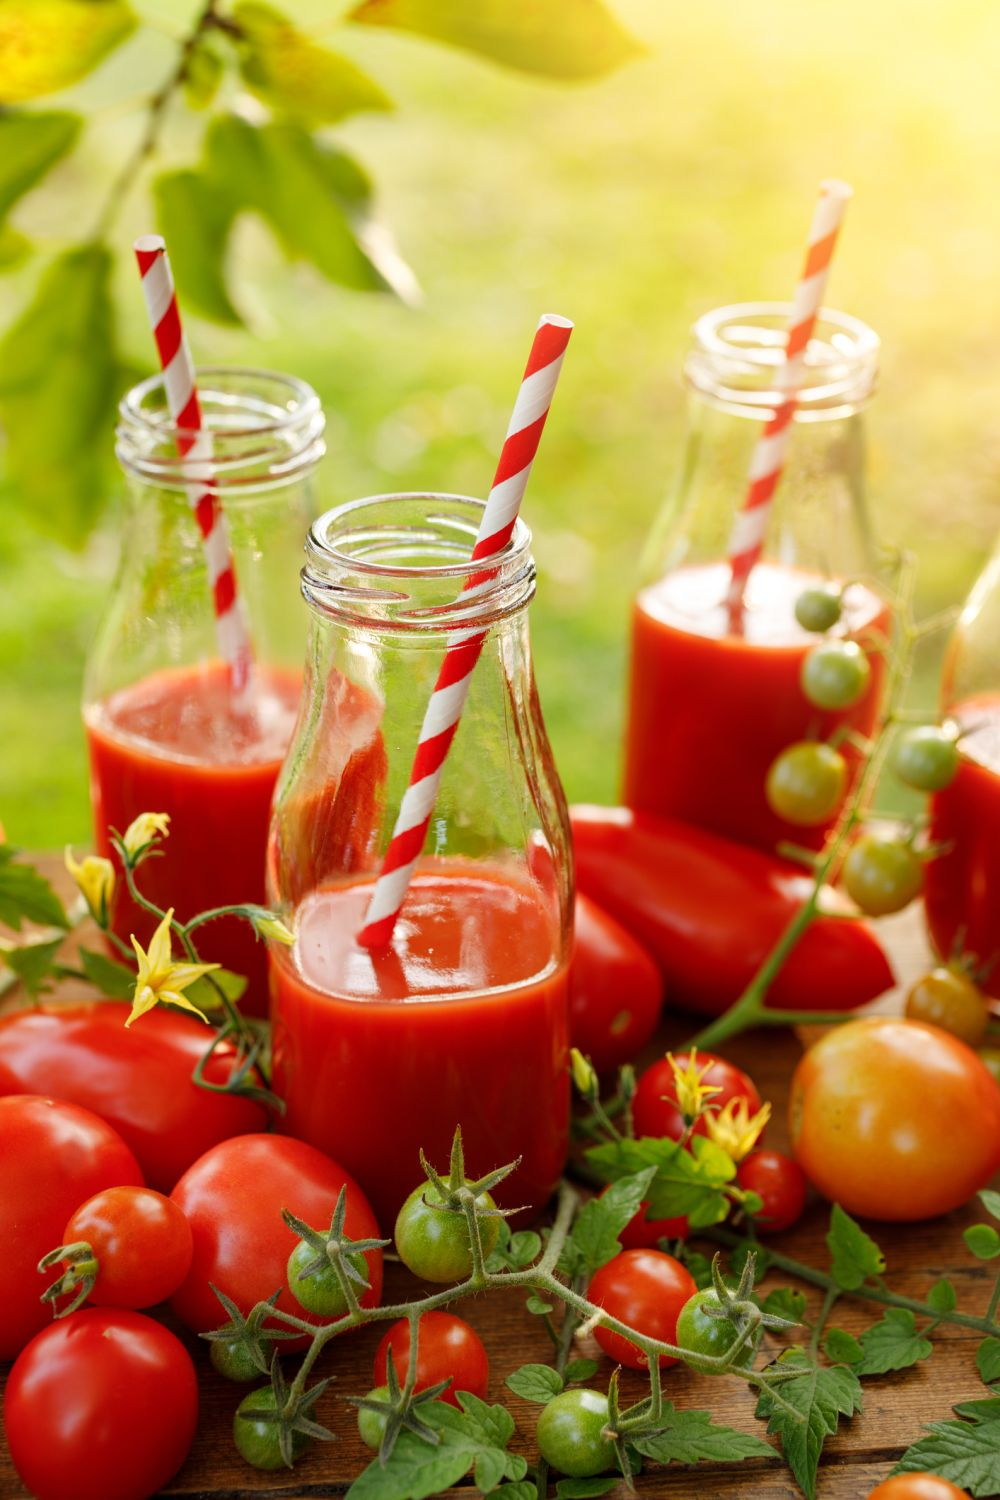 Can you freeze tomato juice